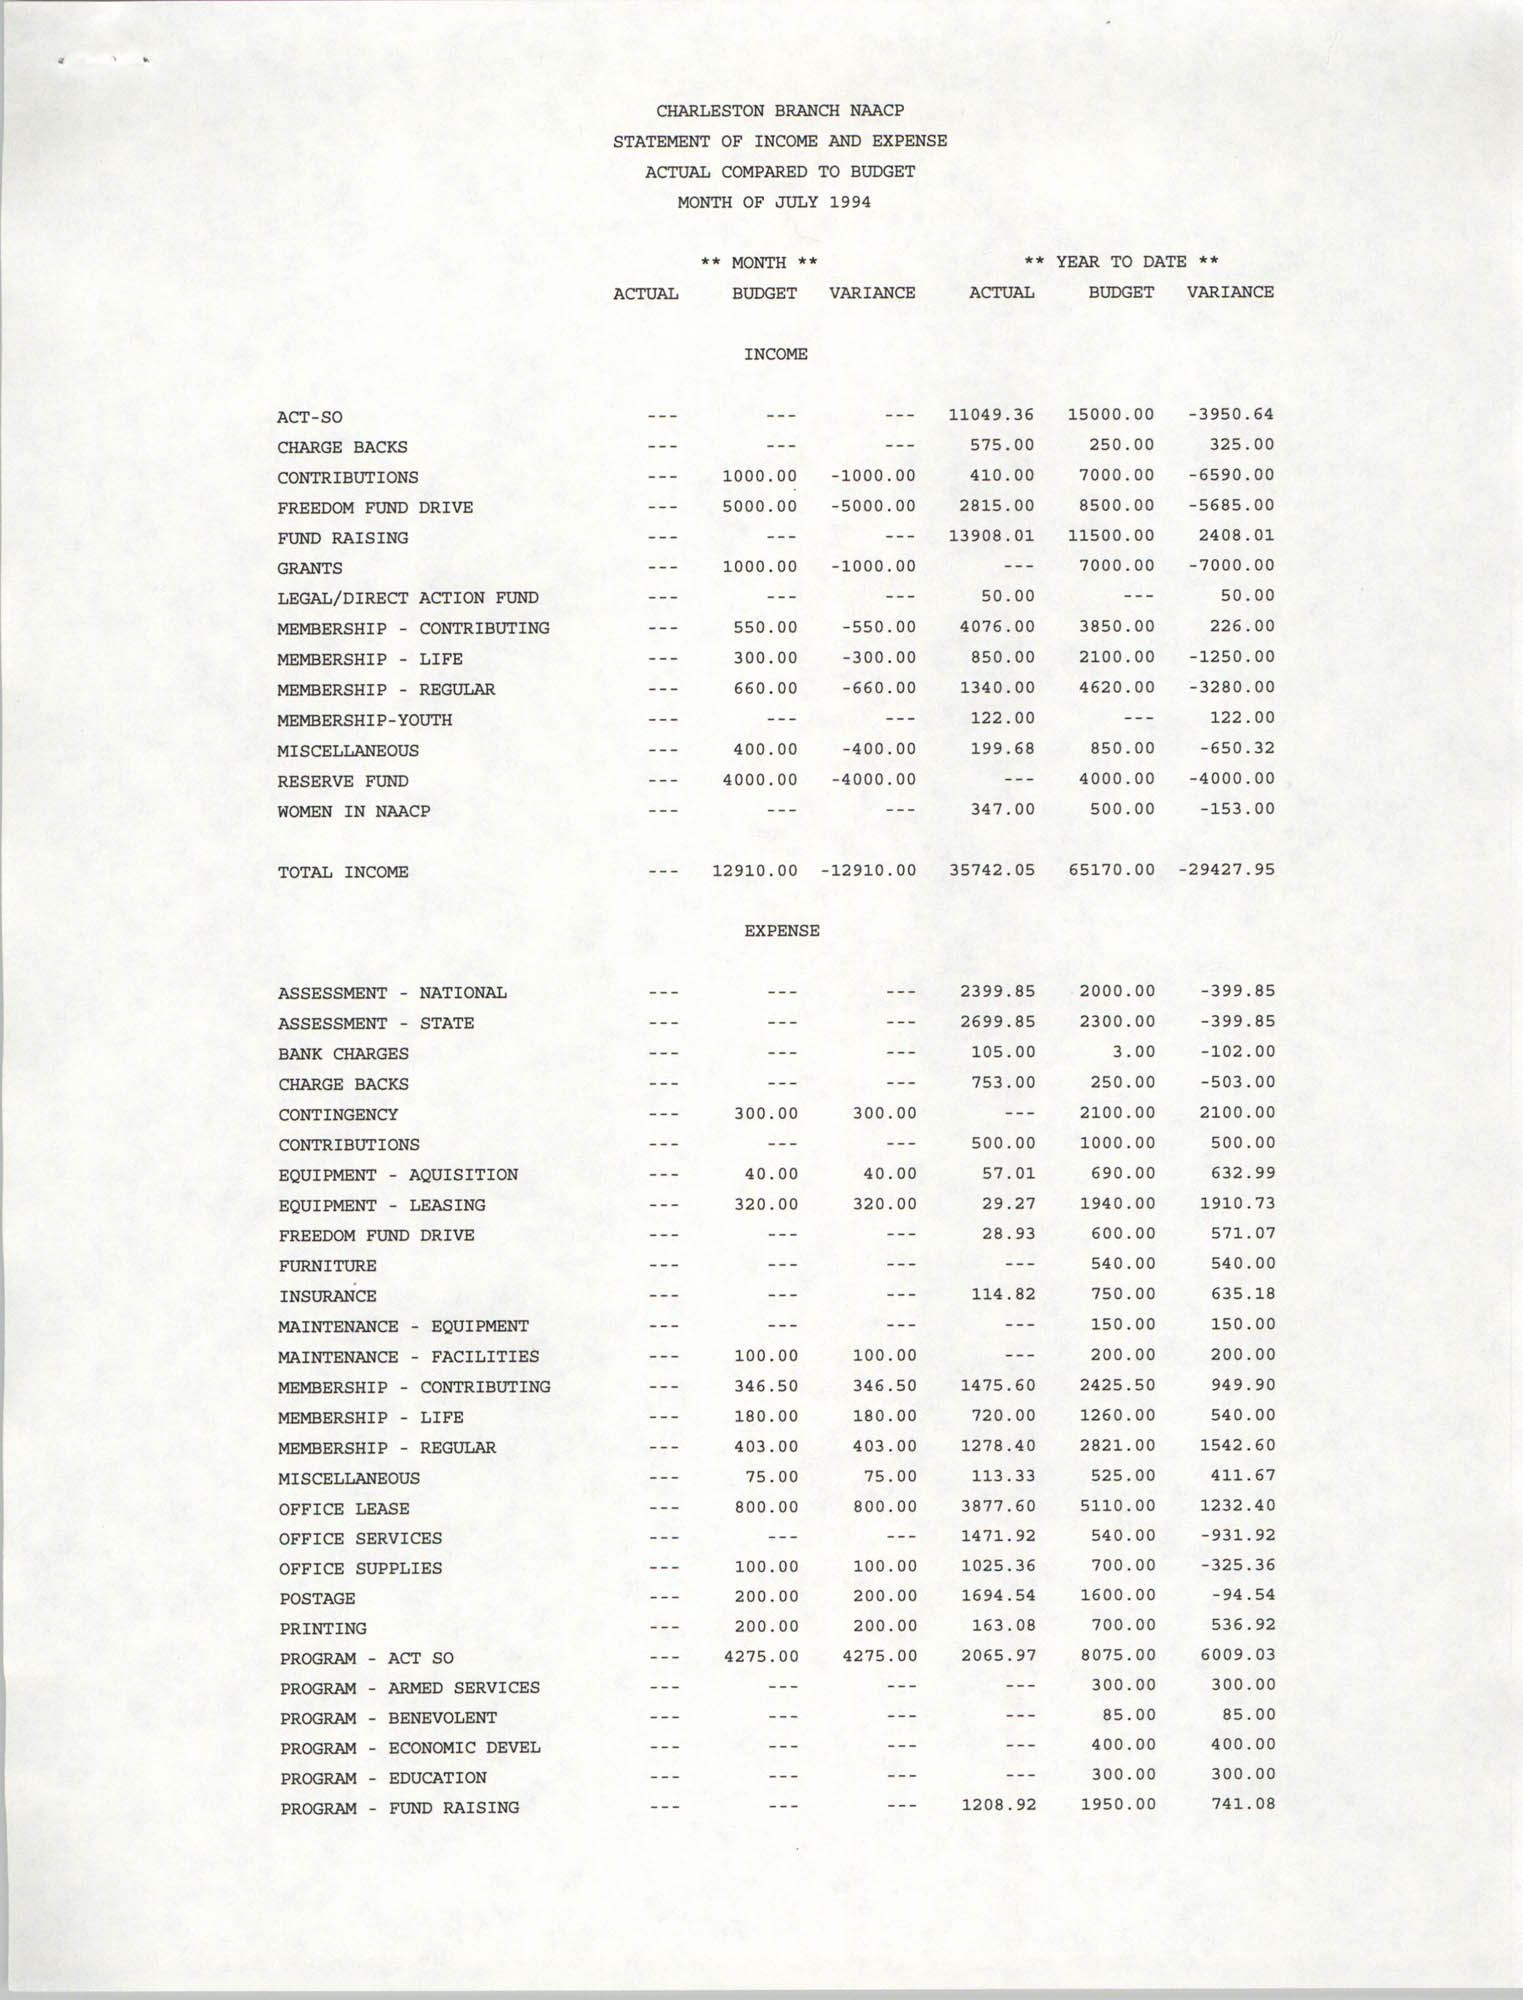 Charleston Branch of the NAACP Statement of Income and Expense, July 1994